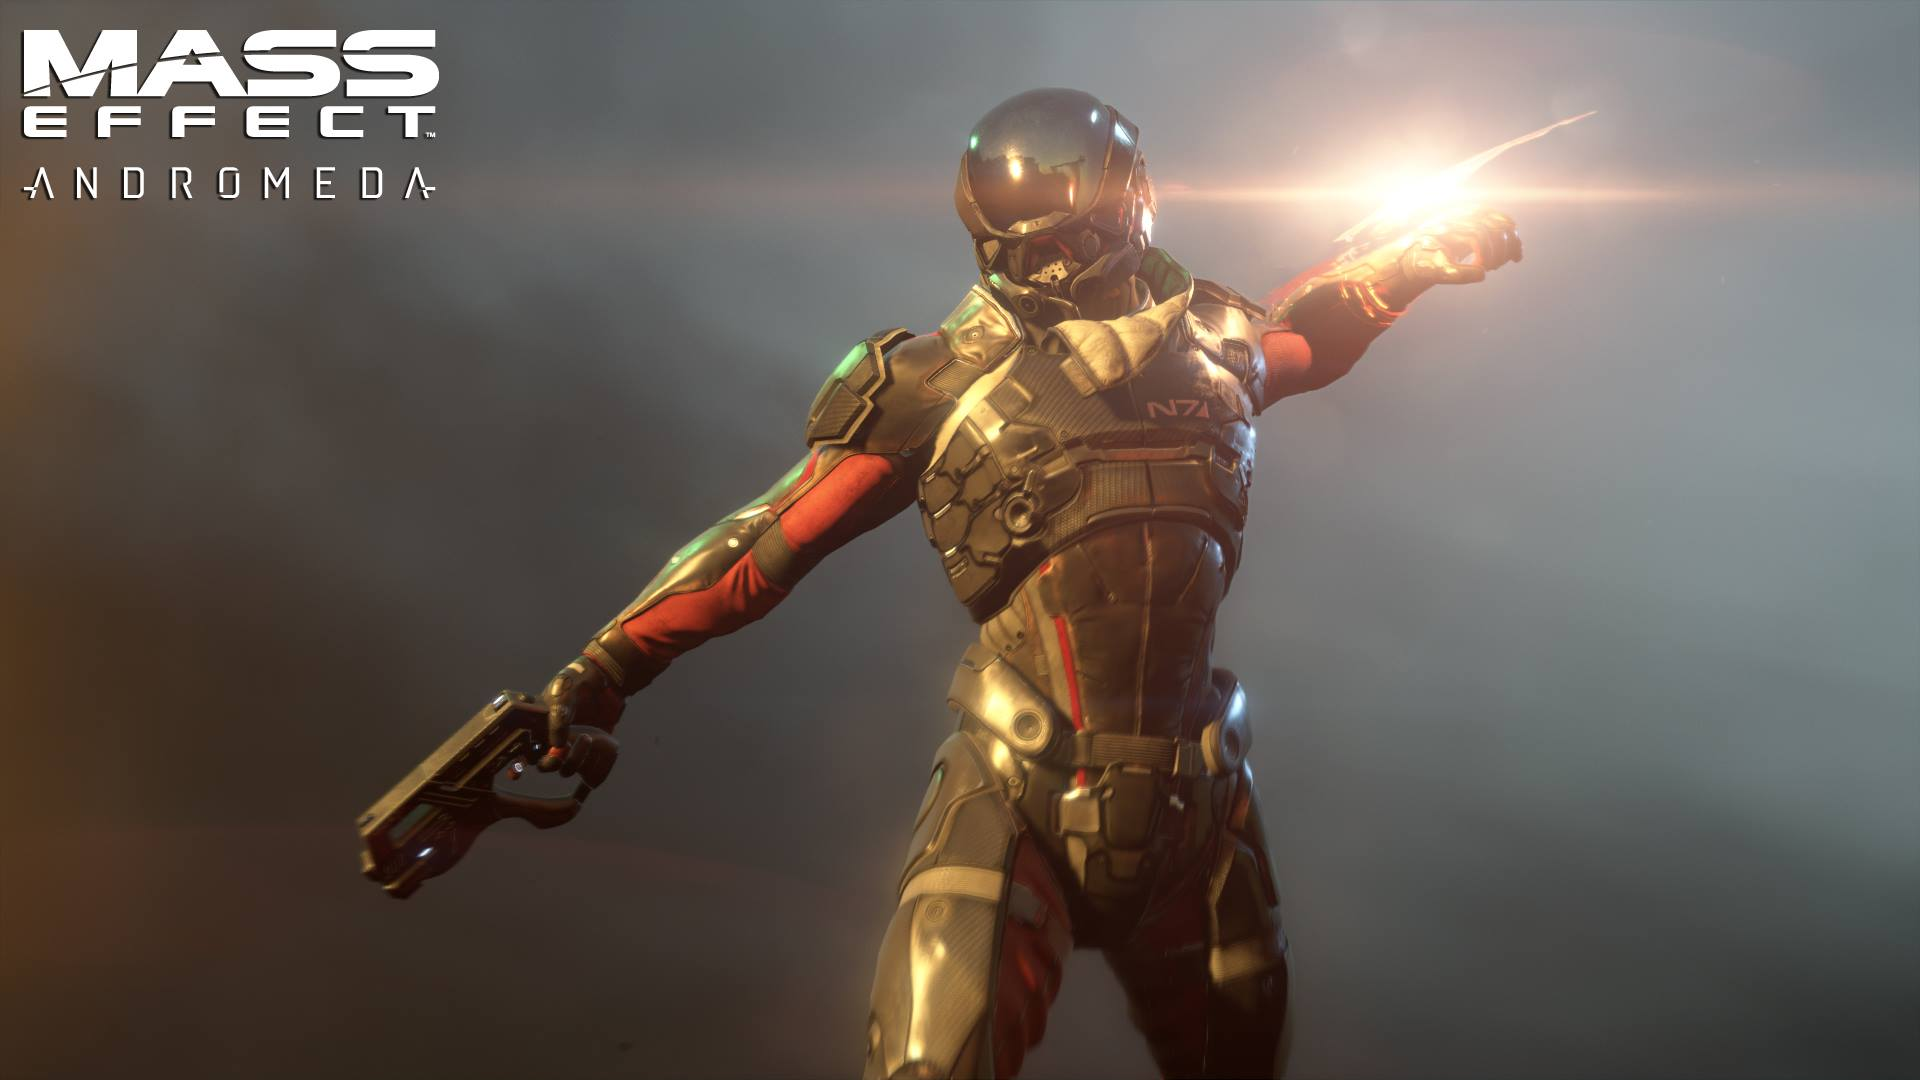 """Mass Effect Andromeda"" Delayed into 2017 - Still Little Information Revealed About the Game"